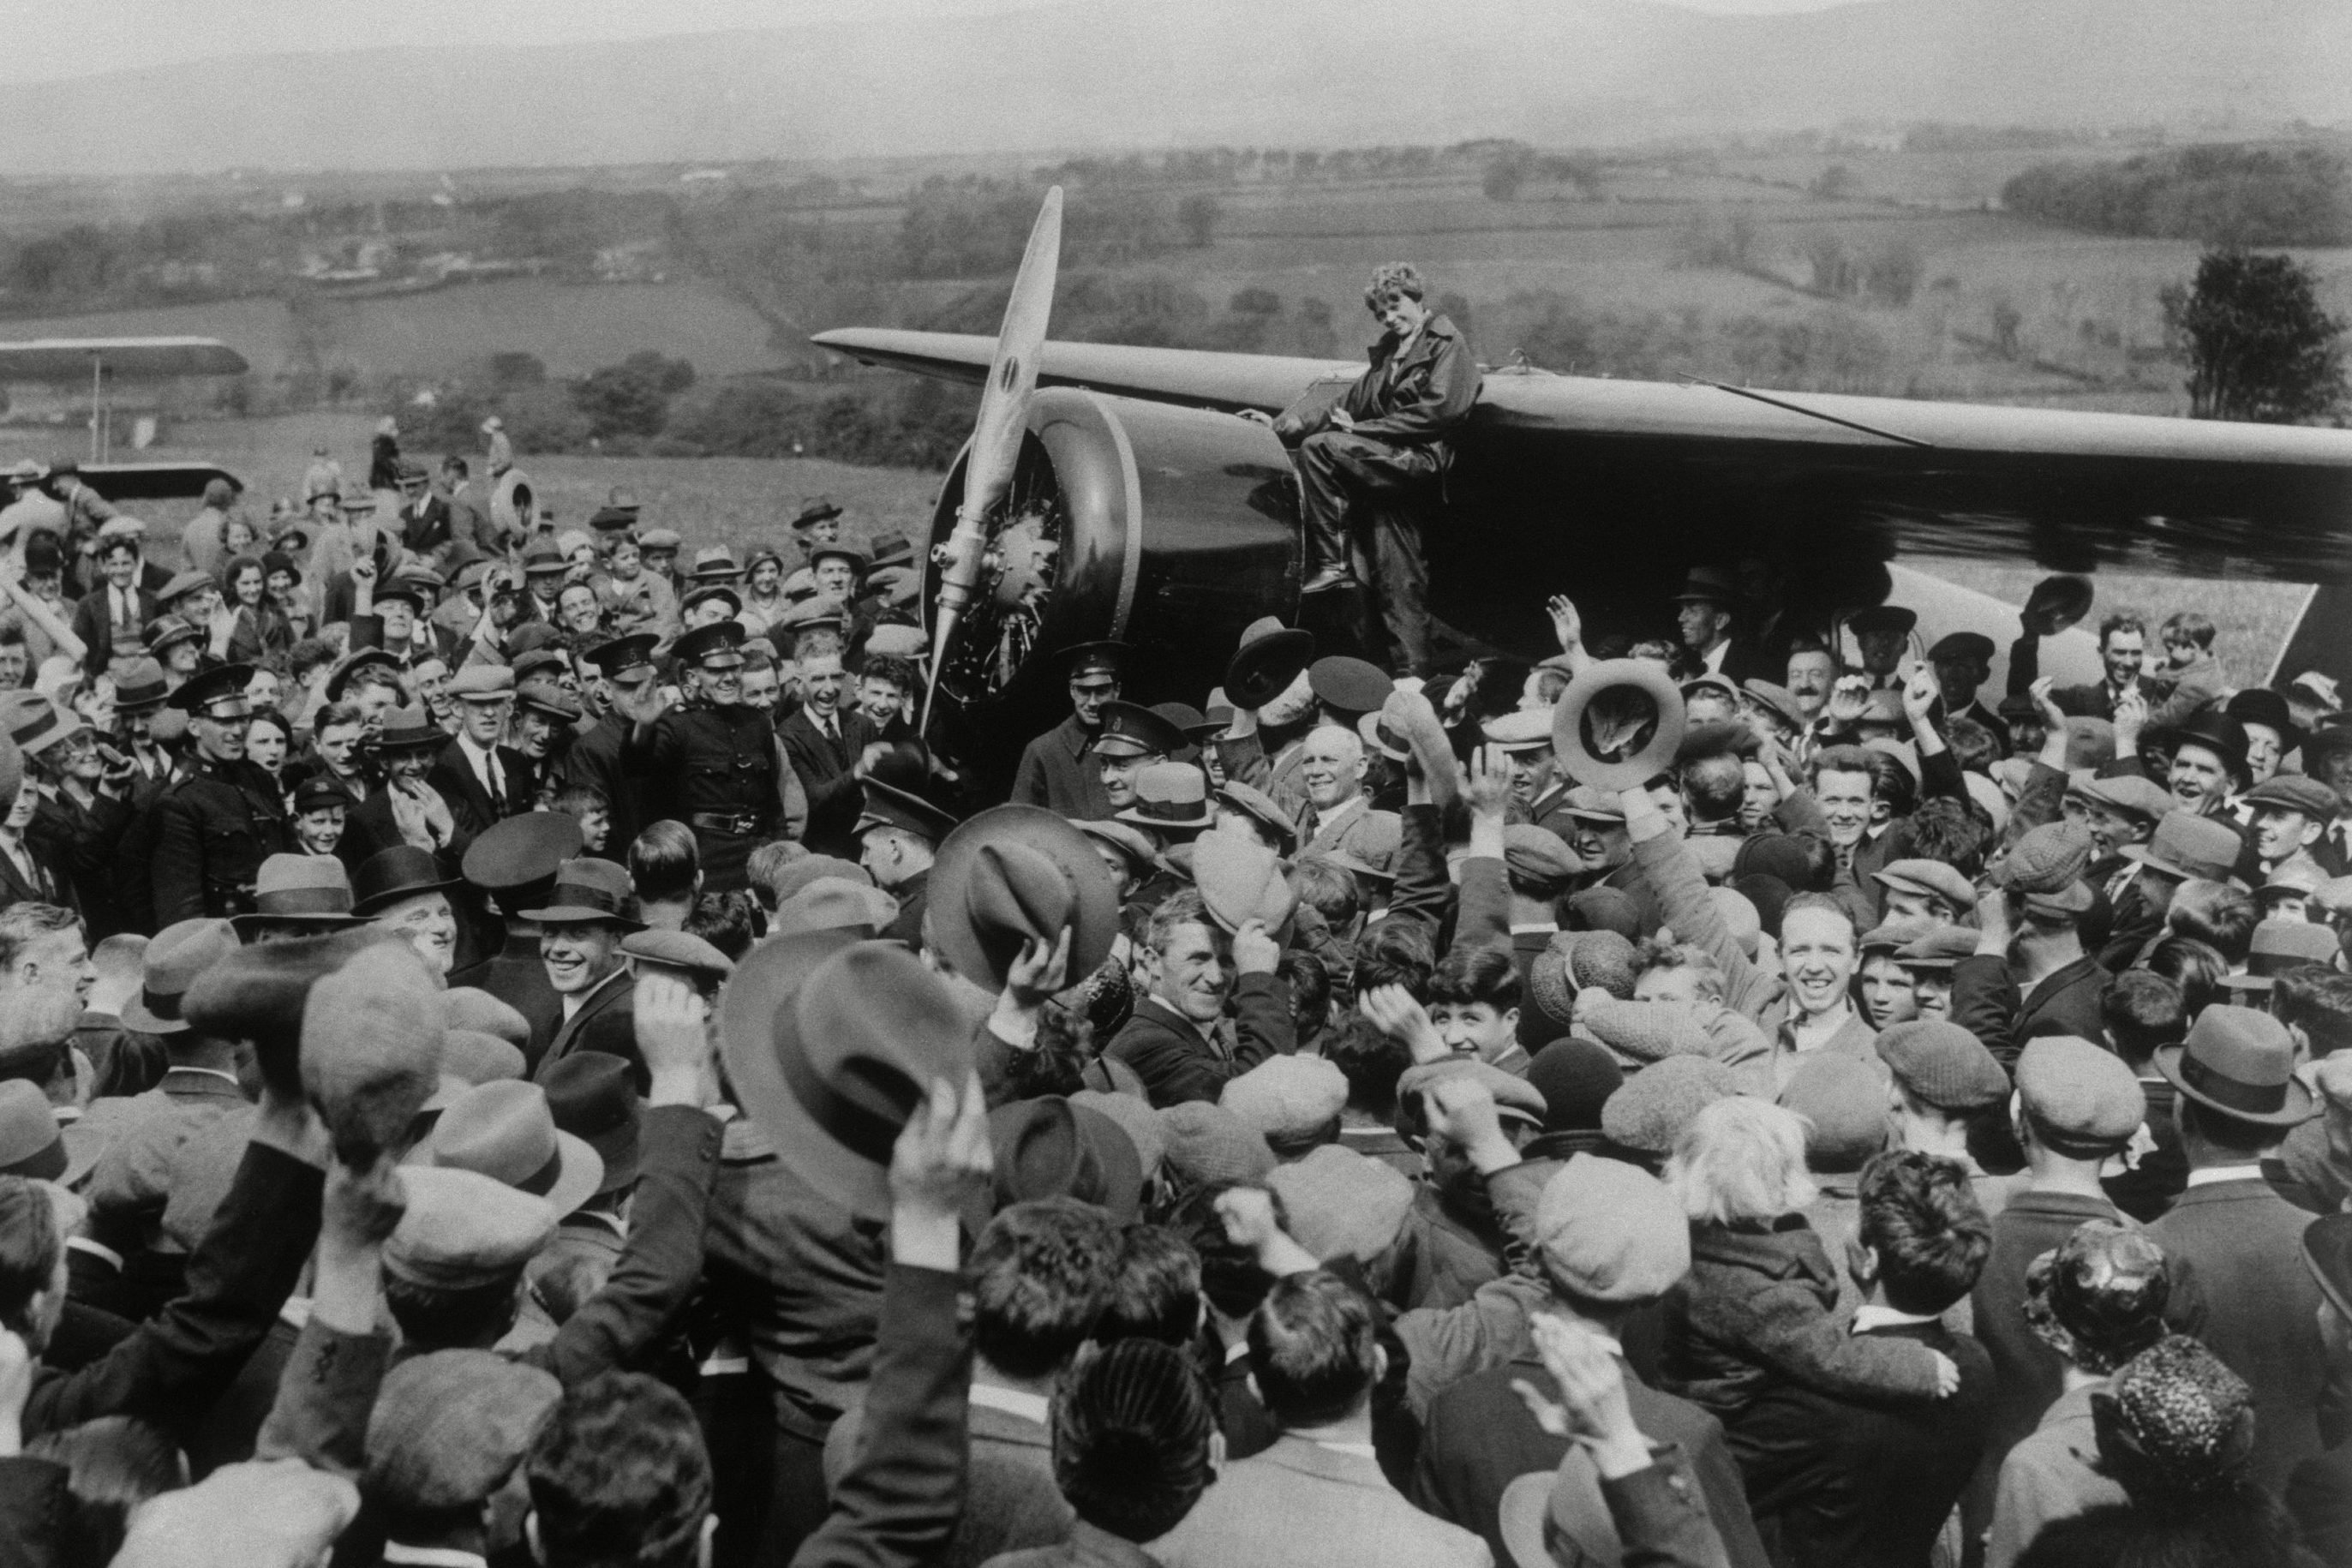 Mandatory Credit: Photo by Anonymous/AP/Shutterstock (7391973a) A crowd cheers for aviatrix Amelia Earhart as she boards her single-engine Lockheed Vega airplane in Londonderry, Northern Ireland, for the trip back to London on . Earhart became the first woman to fly solo nonstop across the Atlantic Ocean when she finished her 2,026 mile journey on May 21, 1932 in under 15 hours after departing from Harbour Grace, Newfoundland. Earhart vanished mysteriously over the Pacific during her attempted round-the-world flight in 1937 Amelia Earhart Solo Flight, Londonderry, United Kingdom